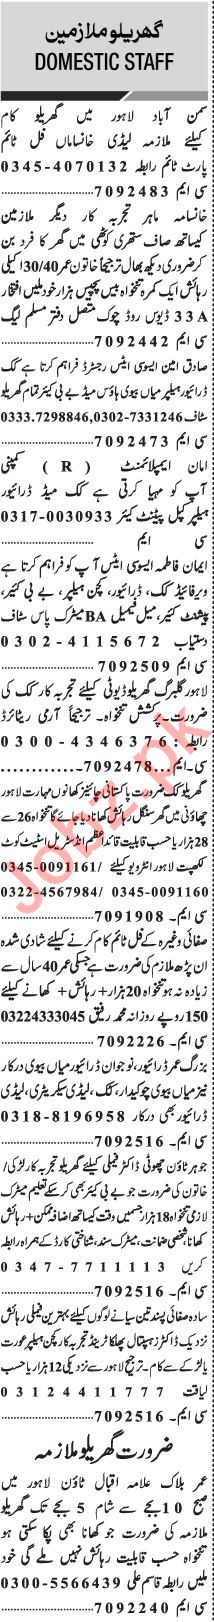 Jang Sunday Classified Ads 27 Dec 2020 for House Staff